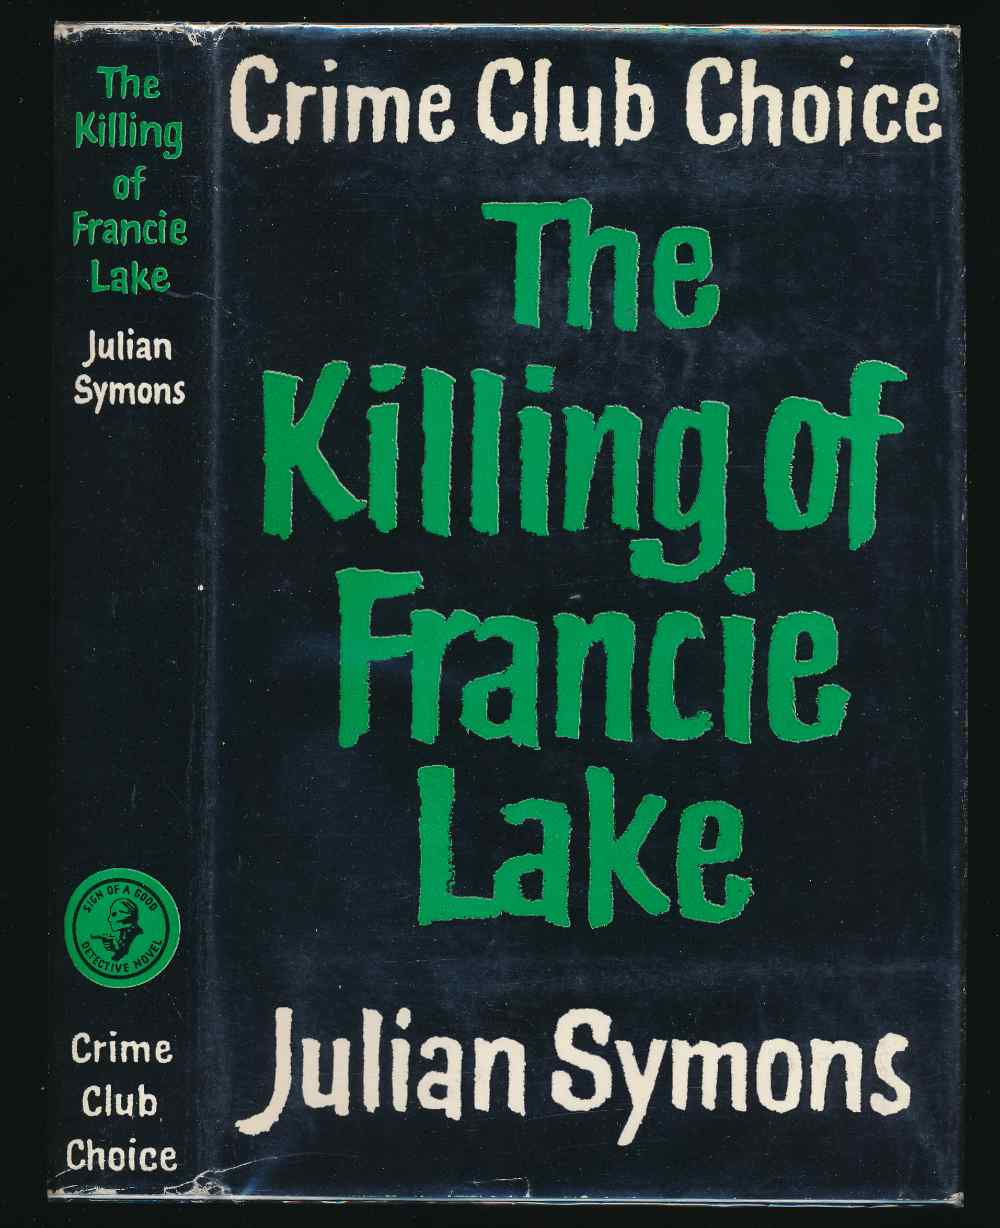 The killing of Francie Lake